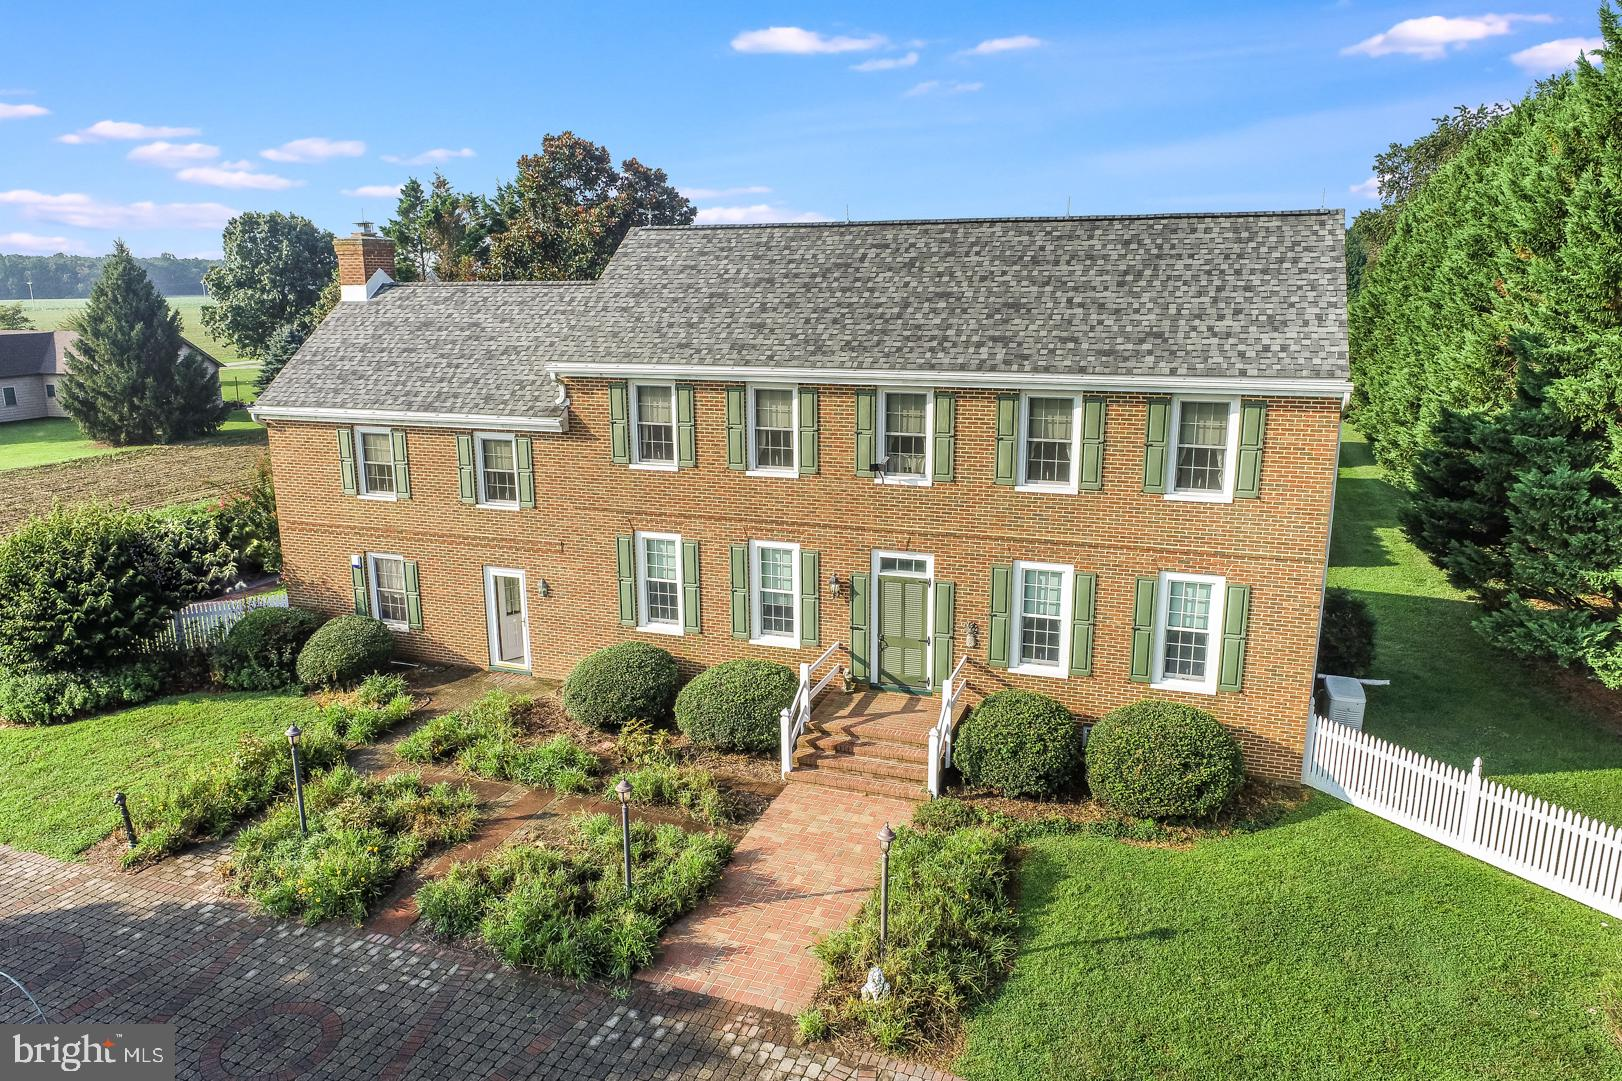 This Georgian colonial is a historic reproduction of  the Lewis mansion. THE SELLER IS OFFERING A HOME WARRANTY! It is located in the desirable Caesar Rodney district and sits on 2.5 acres. The tree lined driveway is accentuated by post lanterns leading up to the colored pavers in front of the entrances. There is a gourmet kitchen with custom cherry soft-close cabinets, granite counters, commercial 6 burner gas stove, breakfast bar, pet feeding station, Oyster Cove ceramic tile floors, a gas insert in the fireplace, and artesian tin fixtures custom created by a local tin smith. (There are five additional decorative fireplaces throughout the house.) The bathrooms have Carrera marble counters, limestone floors, rain head showers, bidet toilets, and whirlpool in the owners bath. The main entrance hall has the central staircase and Vermont Serpentine marble flooring. A second staircase leads from the kitchen to the second floor. Additional highlights include hardwood floors, crown molding, and 9 foot ceilings. There are roomy closets, storage, and shelving throughout the house. An ADT security system is wired with cameras and an outside siren in addition to a whole house generator. No need to worry— the architectural shingled roof has a warranty to 2066, the HVAC is new in 2021, and the septic was inspected in 2021.